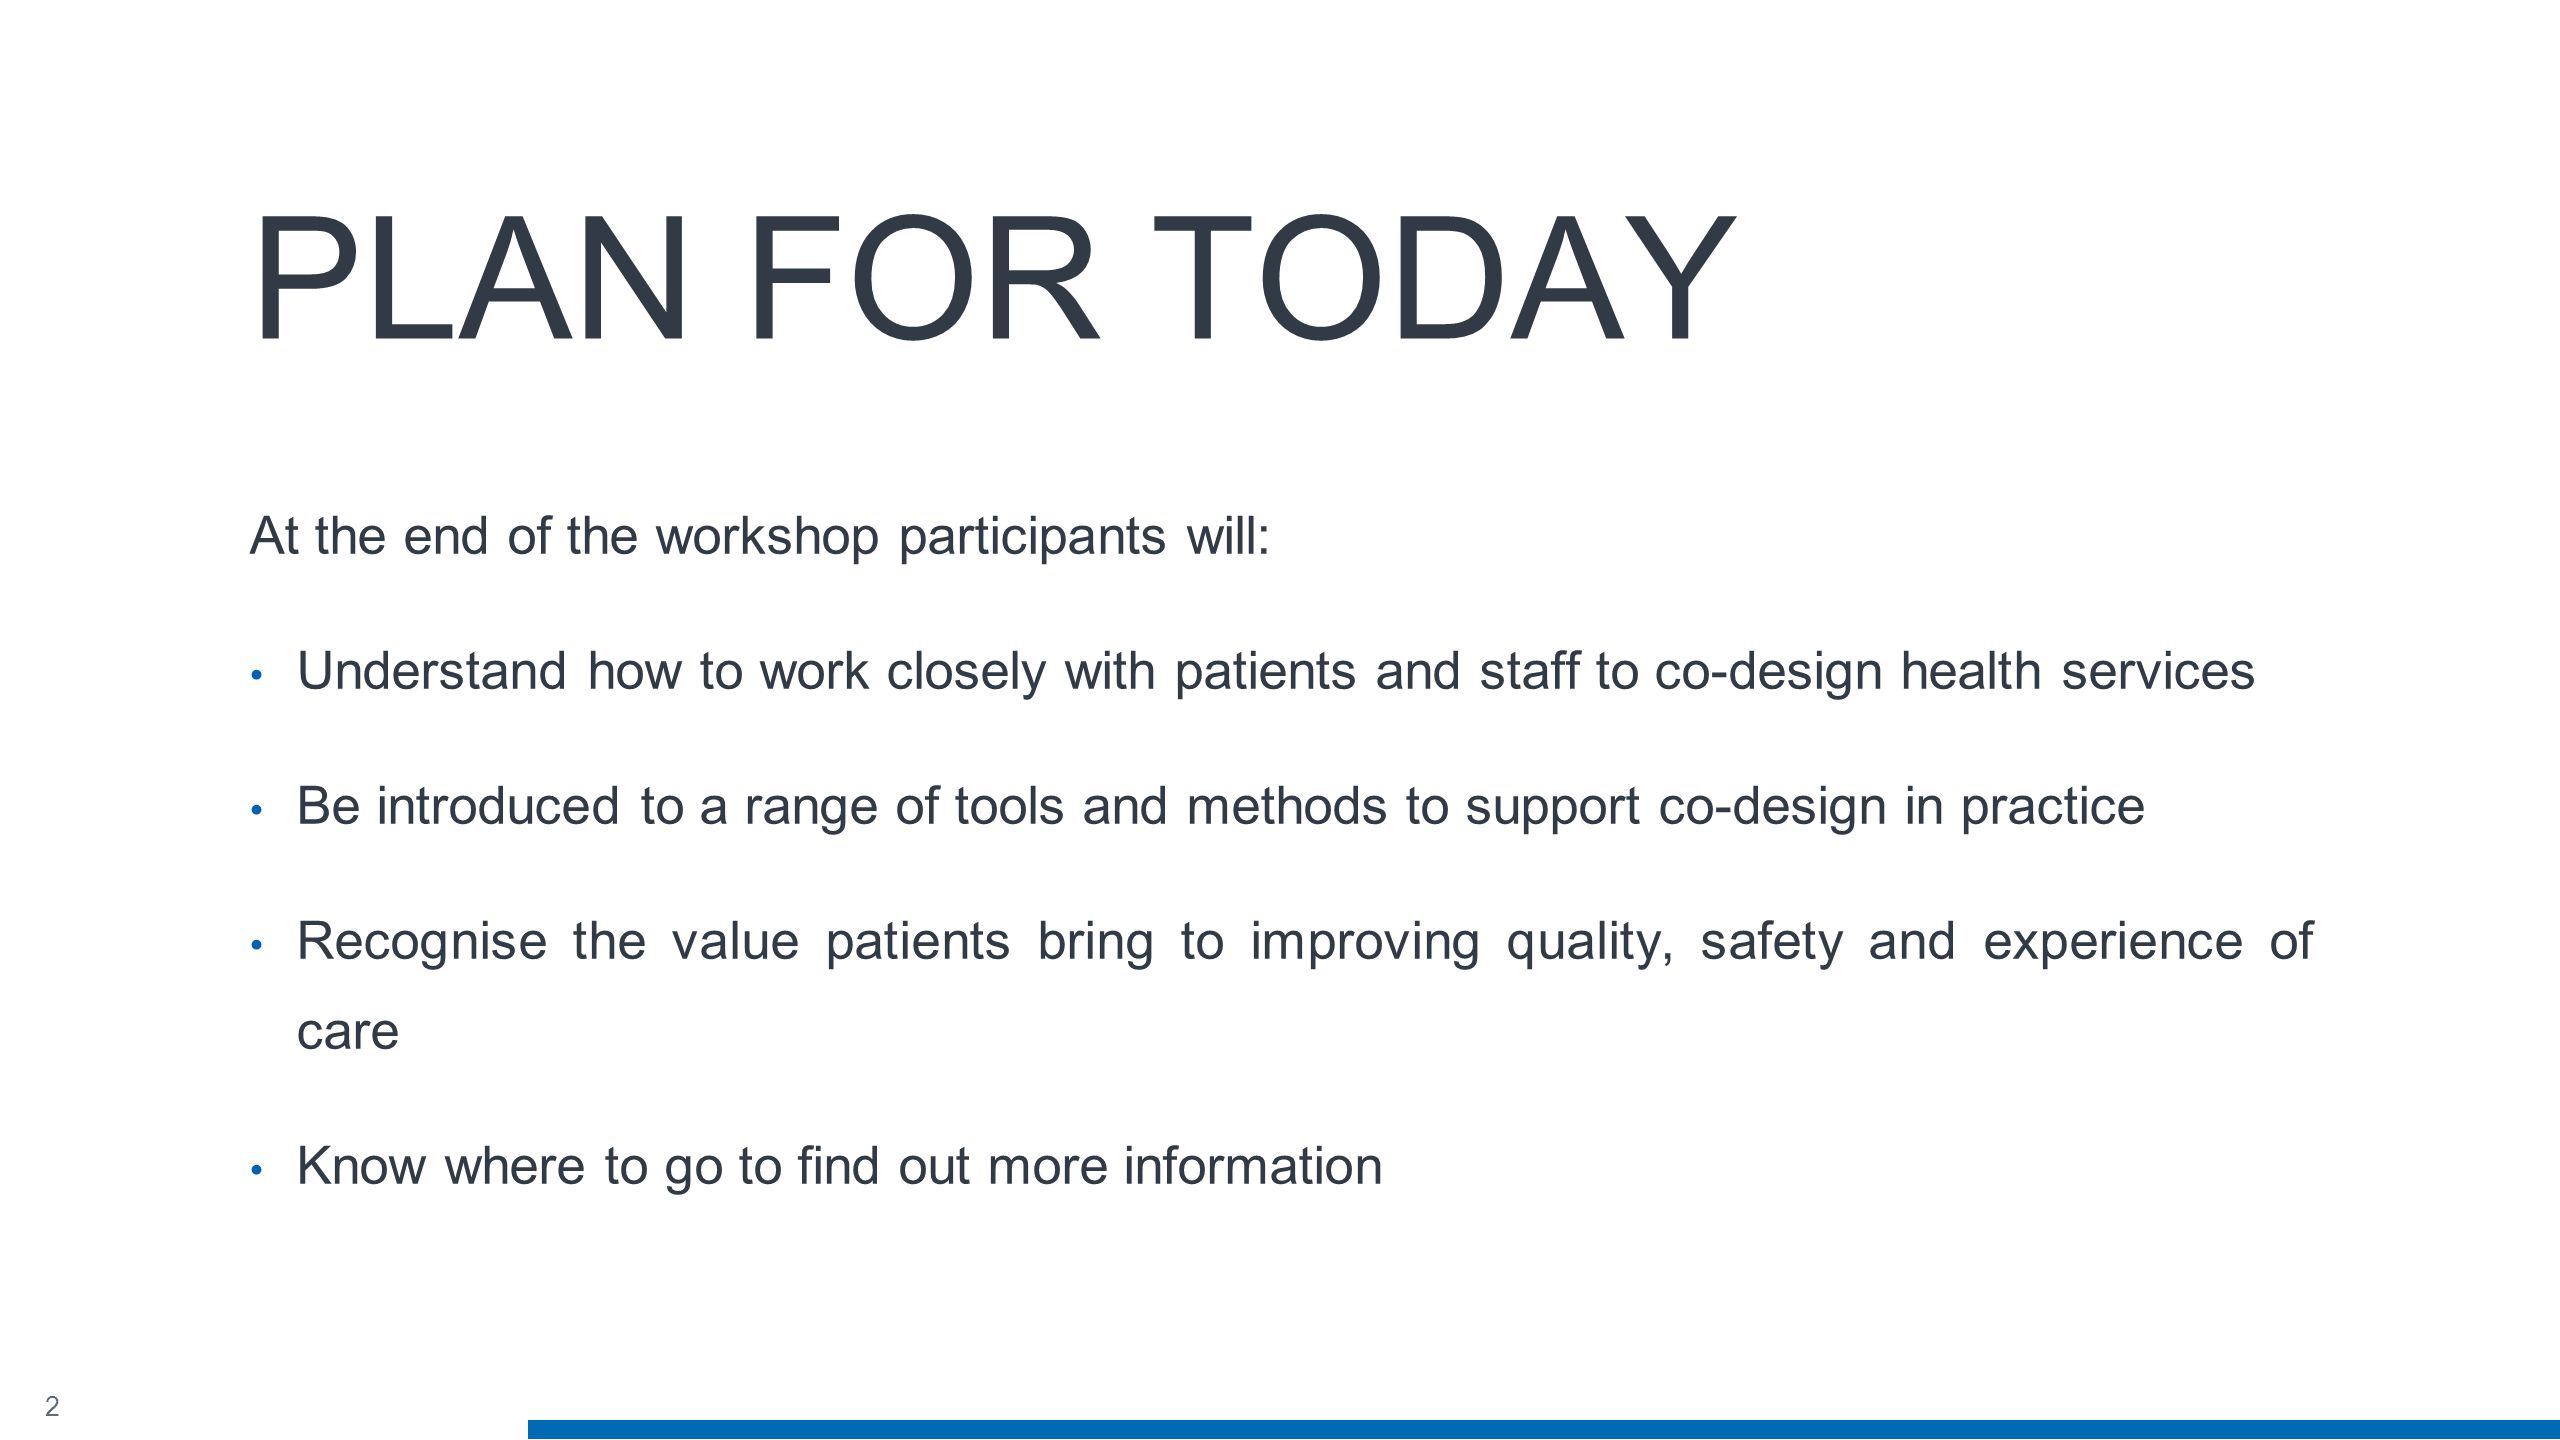 2 PLAN FOR TODAY At the end of the workshop participants will: Understand how to work closely with patients and staff to co-design health services Be introduced to a range of tools and methods to support co-design in practice Recognise the value patients bring to improving quality, safety and experience of care Know where to go to find out more information